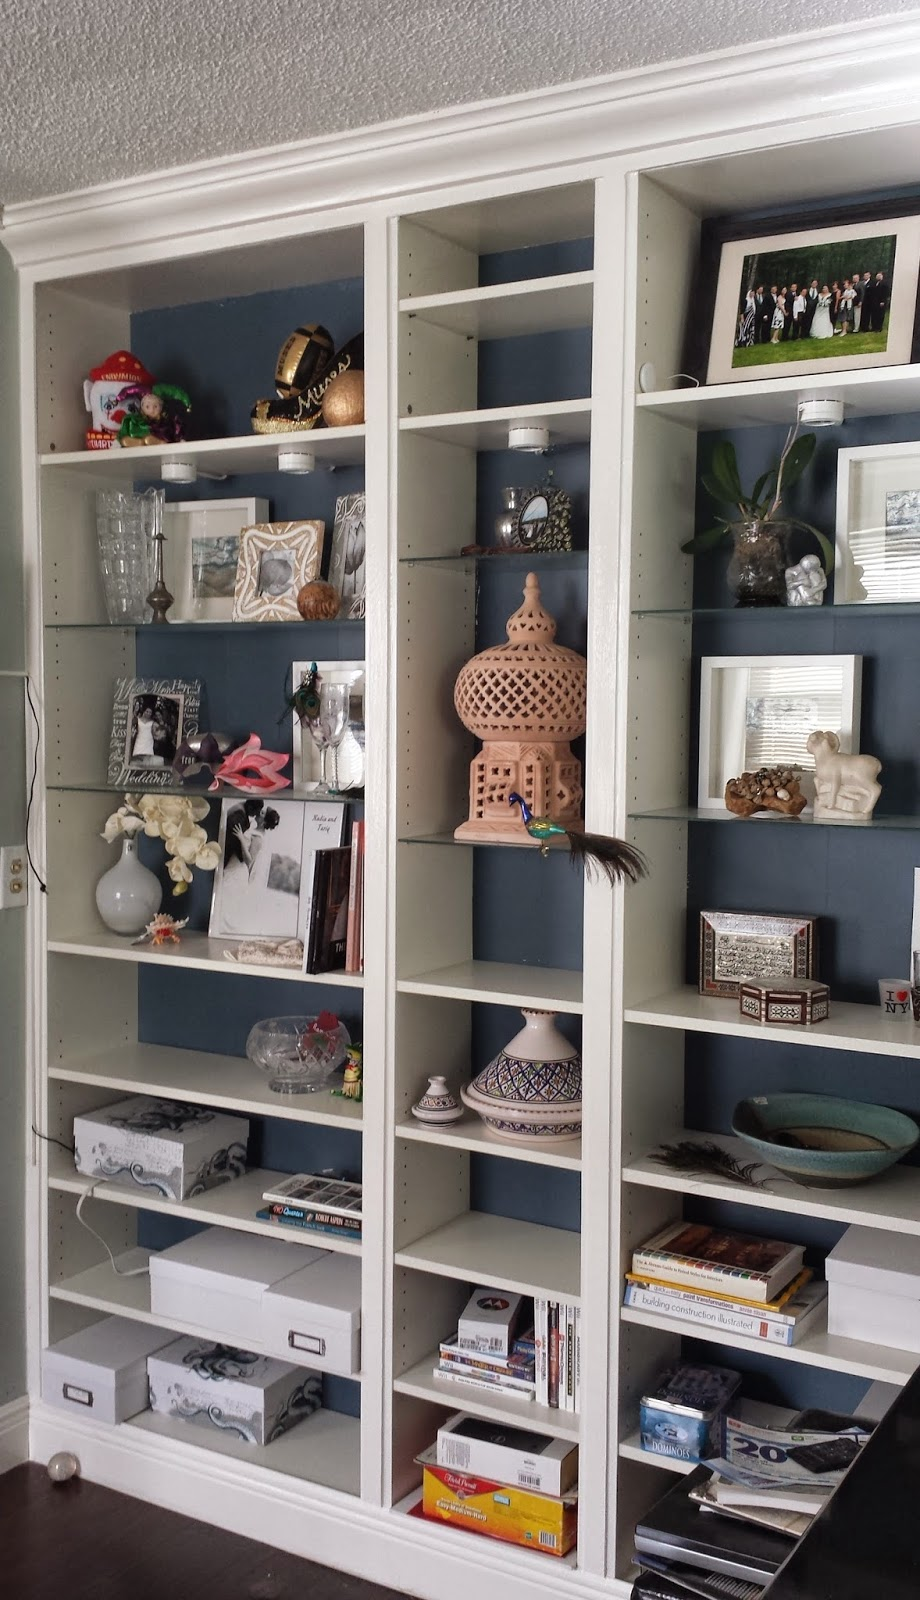 Ikea Hack Bookcase: Nadia's DIY Projects: Turn An IKEA Billy Bookcase Into A